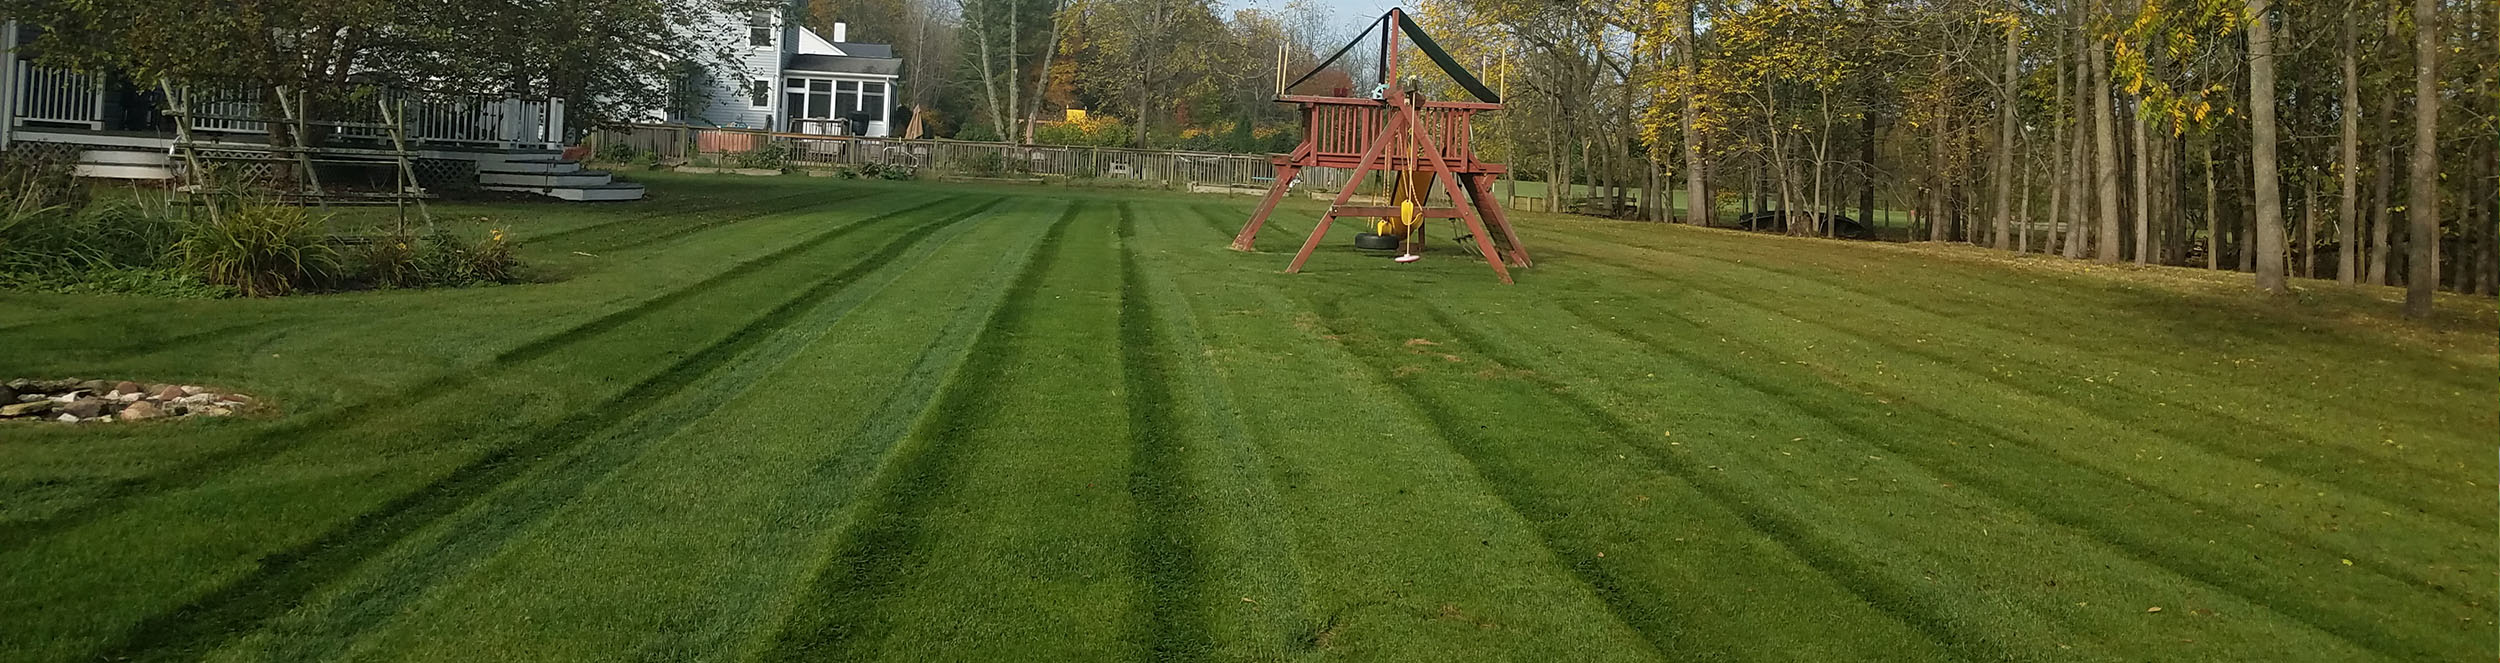 Browns property services lawn care publicscrutiny Image collections